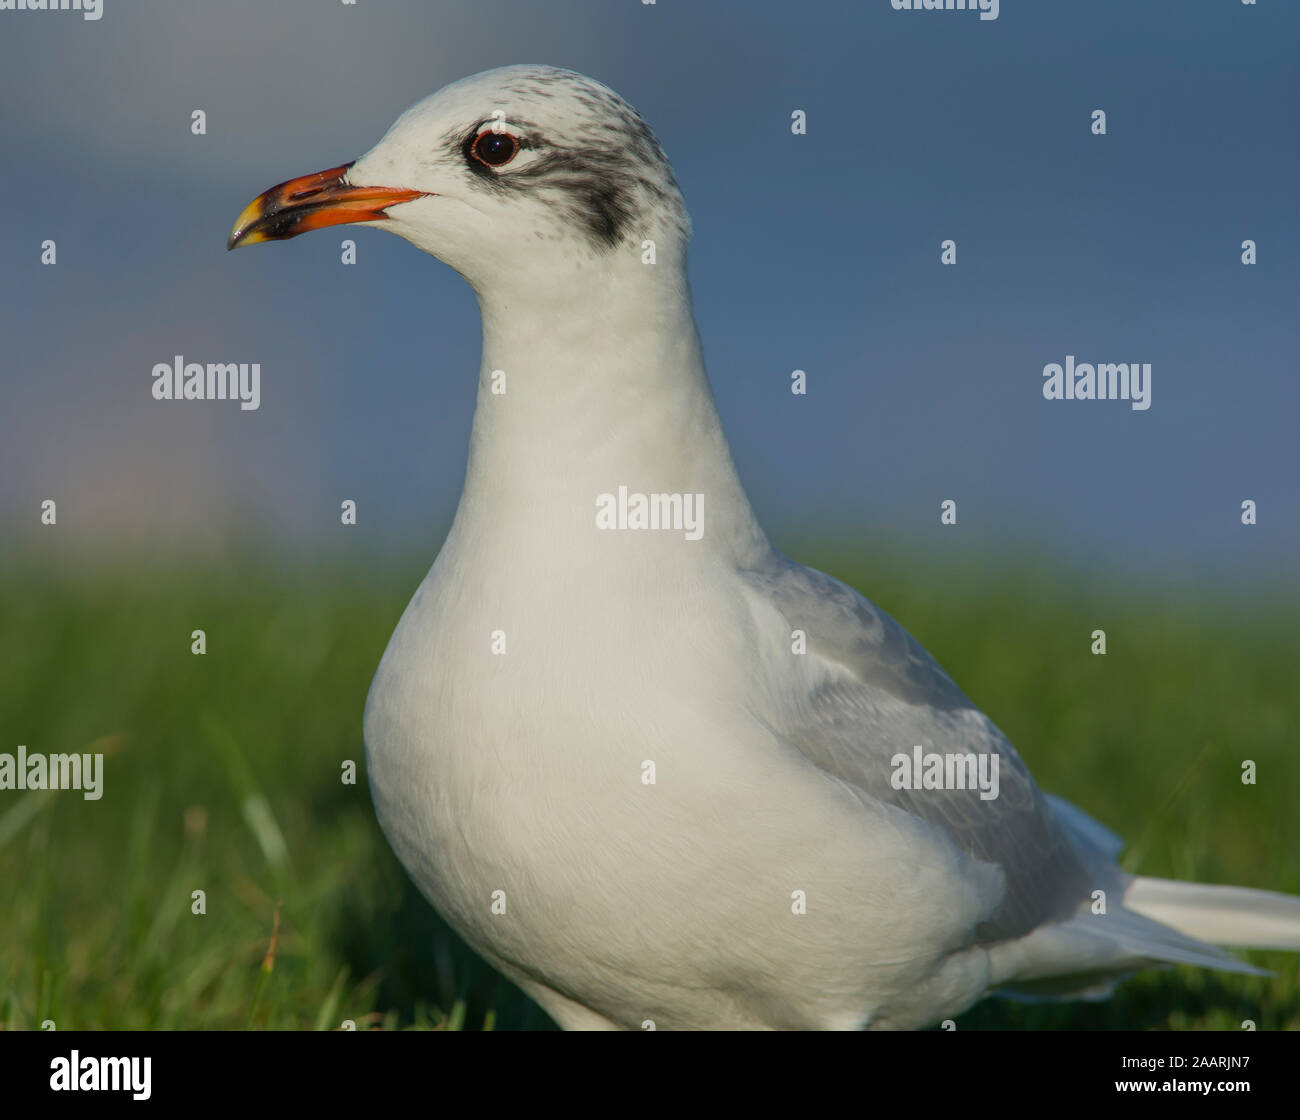 Mediterranean Gull (Larus melanocephalus) in winter plumage on a sunny day in North Yorkshire. Stock Photo